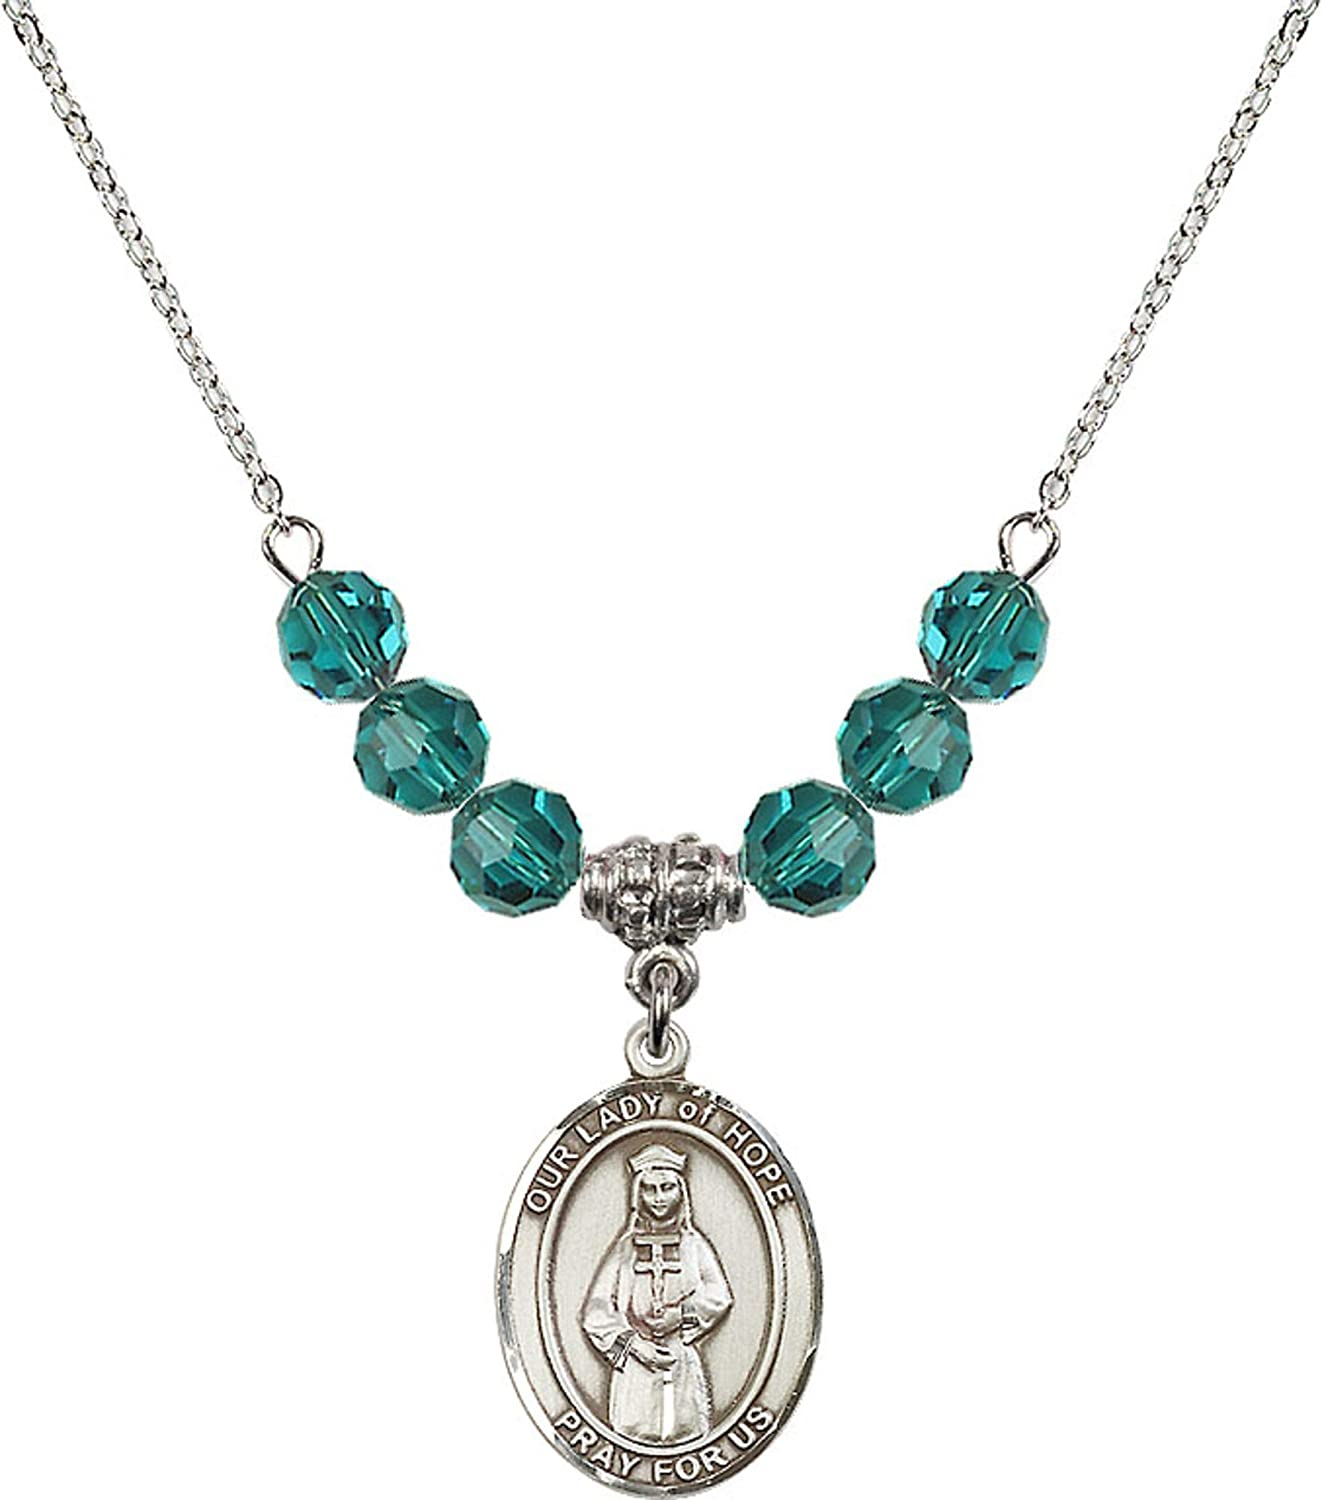 Bonyak Jewelry 18 Inch Rhodium Plated Necklace w// 6mm Blue December Birth Month Stone Beads and Our Lady of Hope Charm